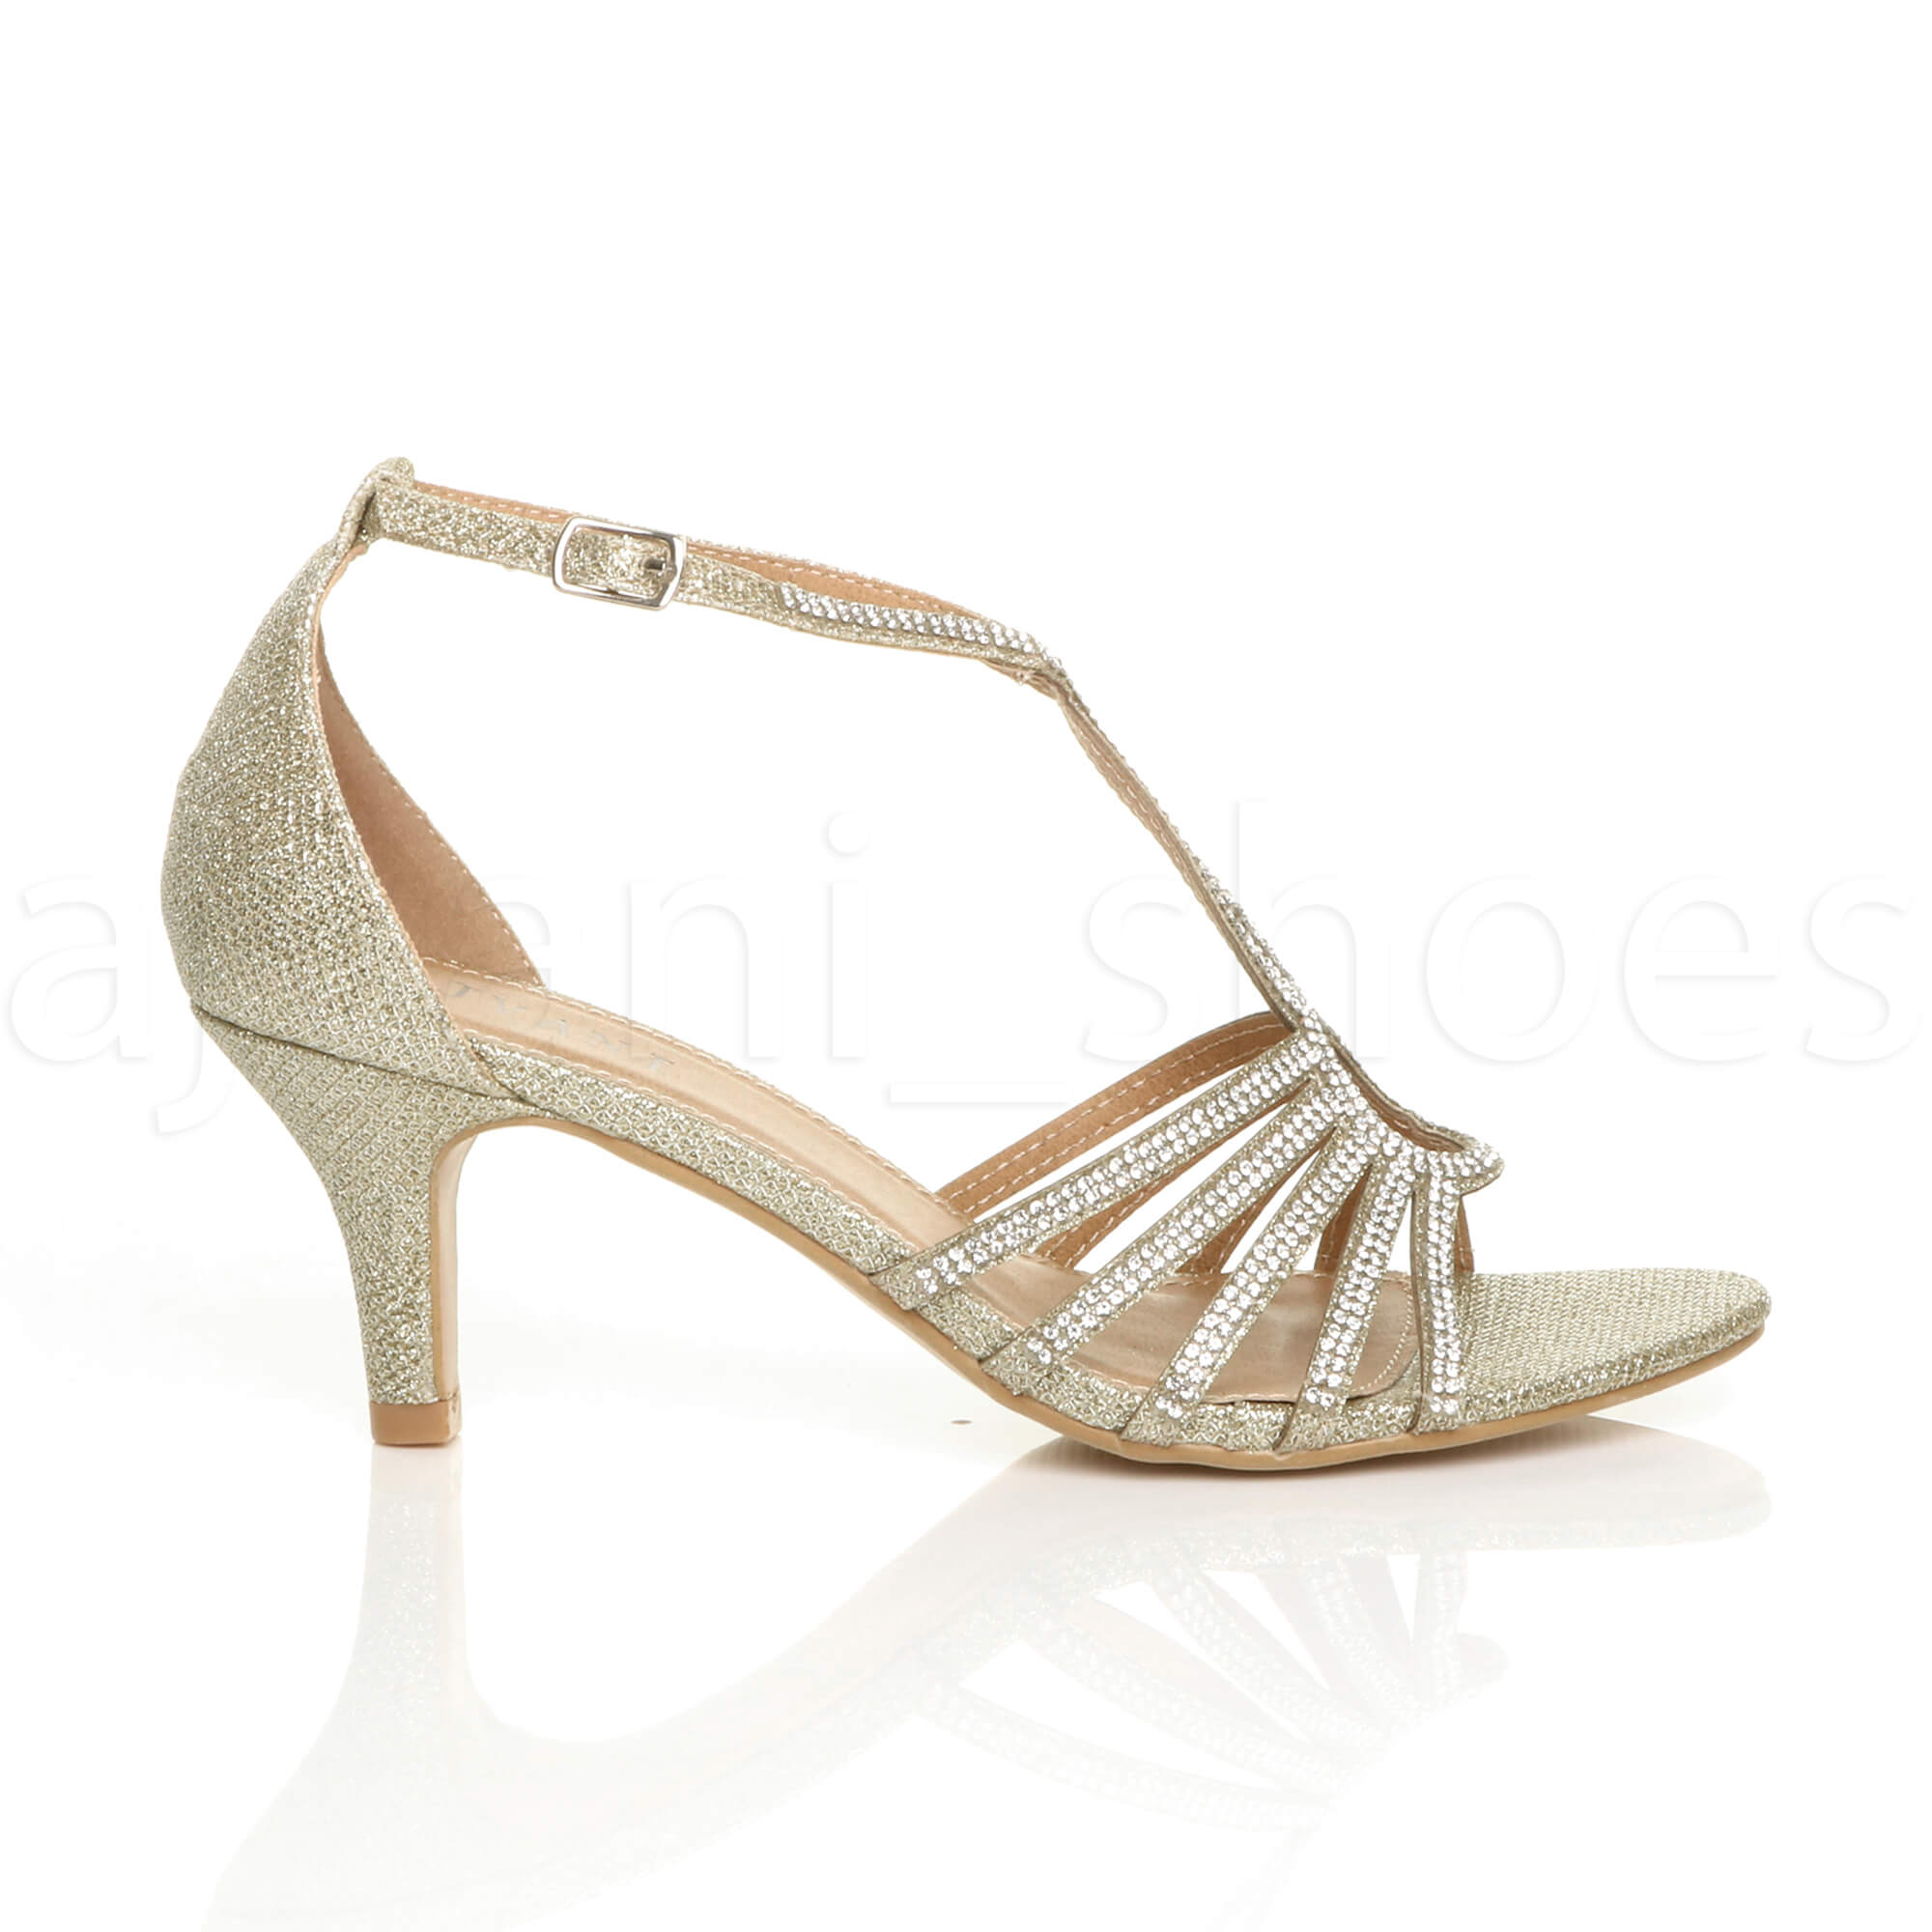 WOMENS-LADIES-MID-HEEL-STRAPPY-DIAMANTE-WEDDING-EVENING-T-BAR-SANDALS-SHOES-SIZE thumbnail 15